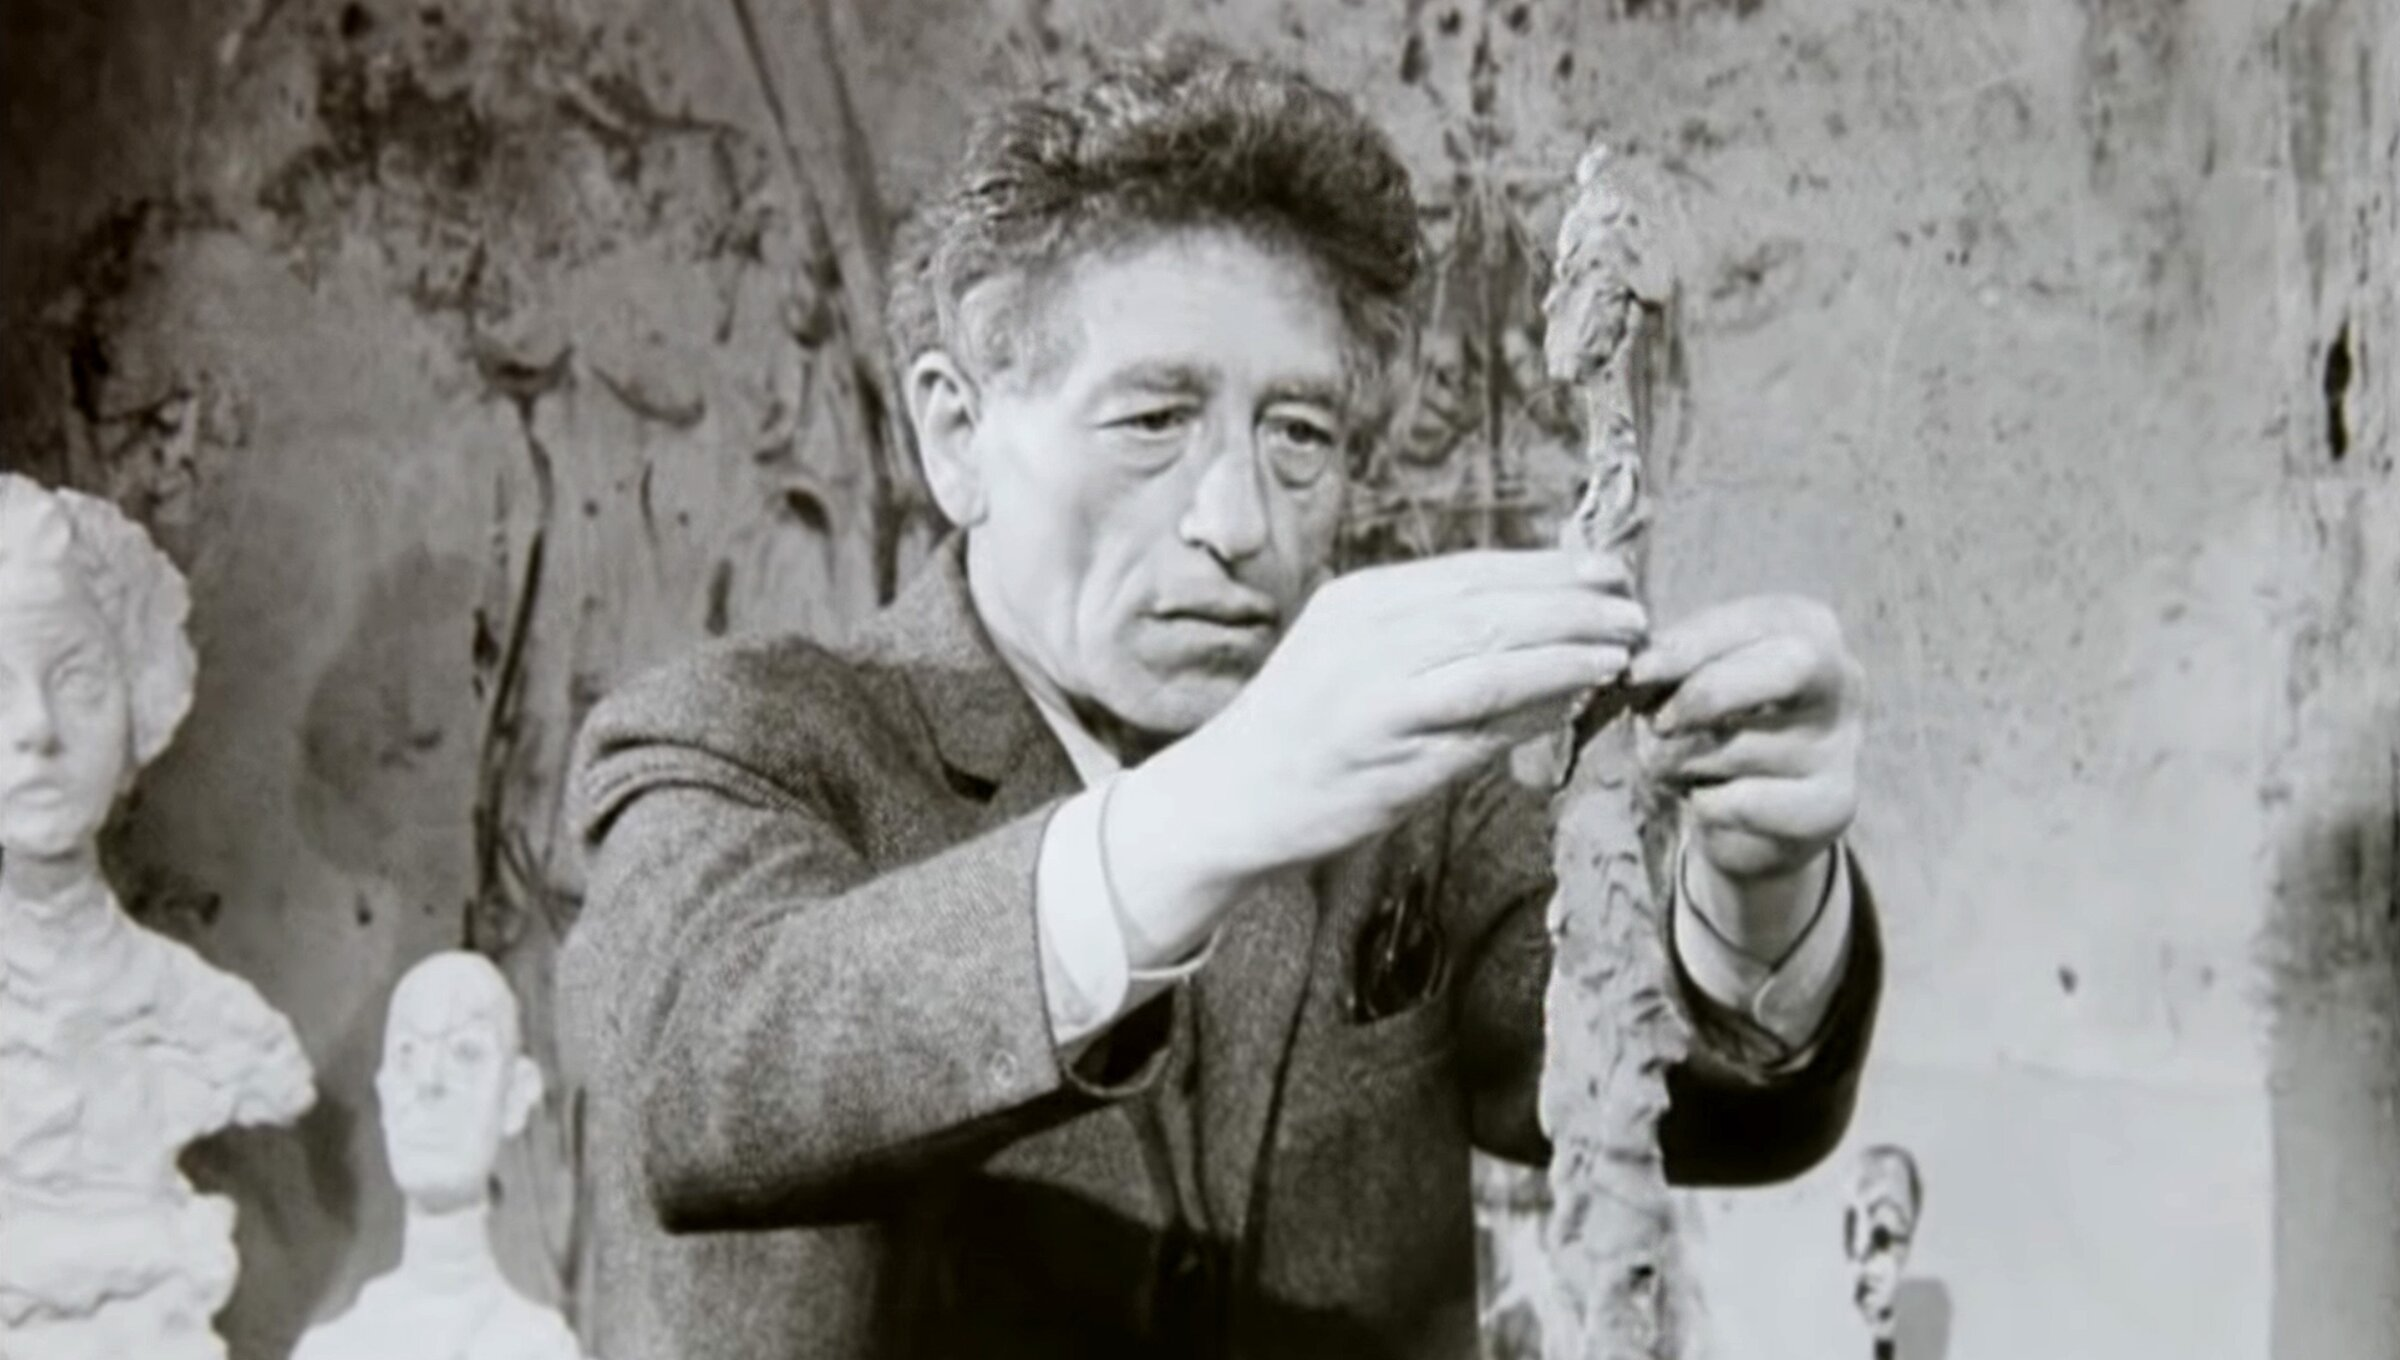 Stretched between dignity and despair, Giacometti's fragile human figures | Psyche